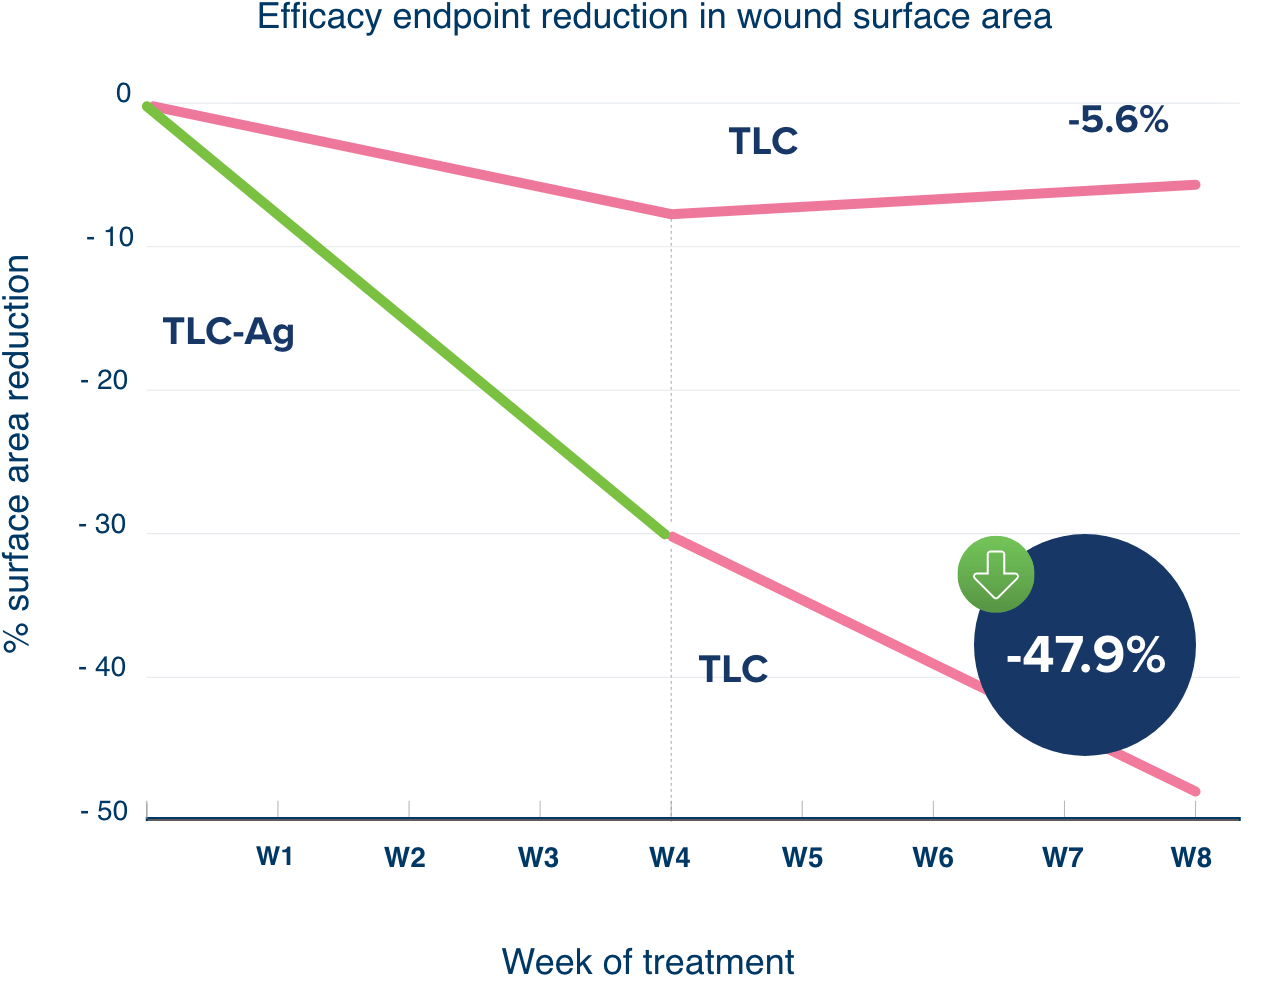 Graph of wound surface area reduction cause by Urgotul Ag.